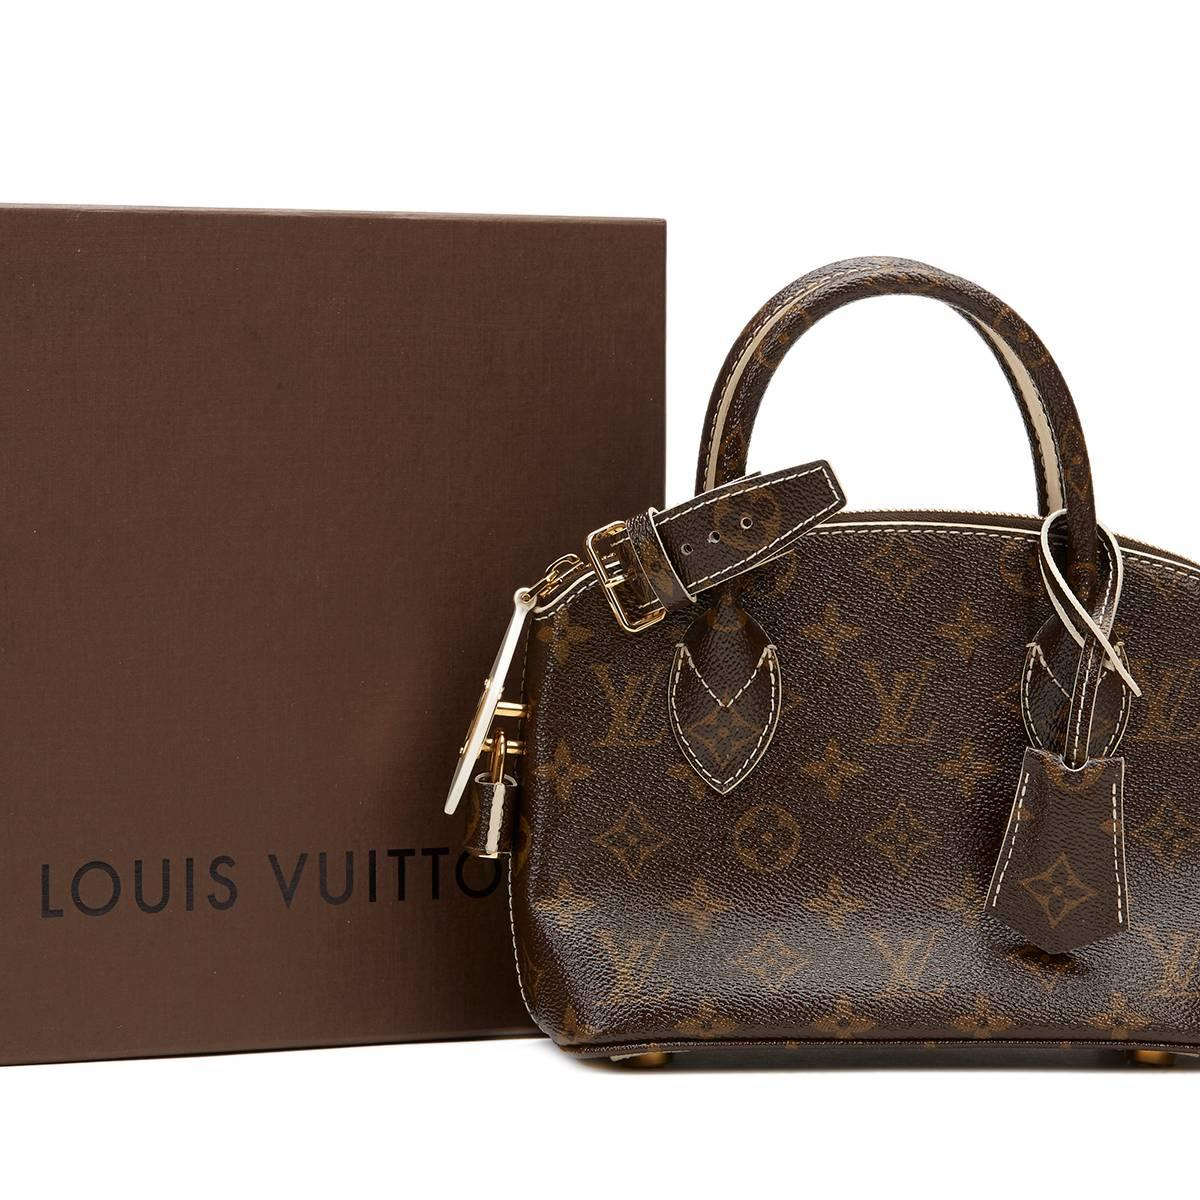 Louis Vuitton 2010s Louis Vuitton Marine Shearling Lockit Pulsion ntPHMCxI